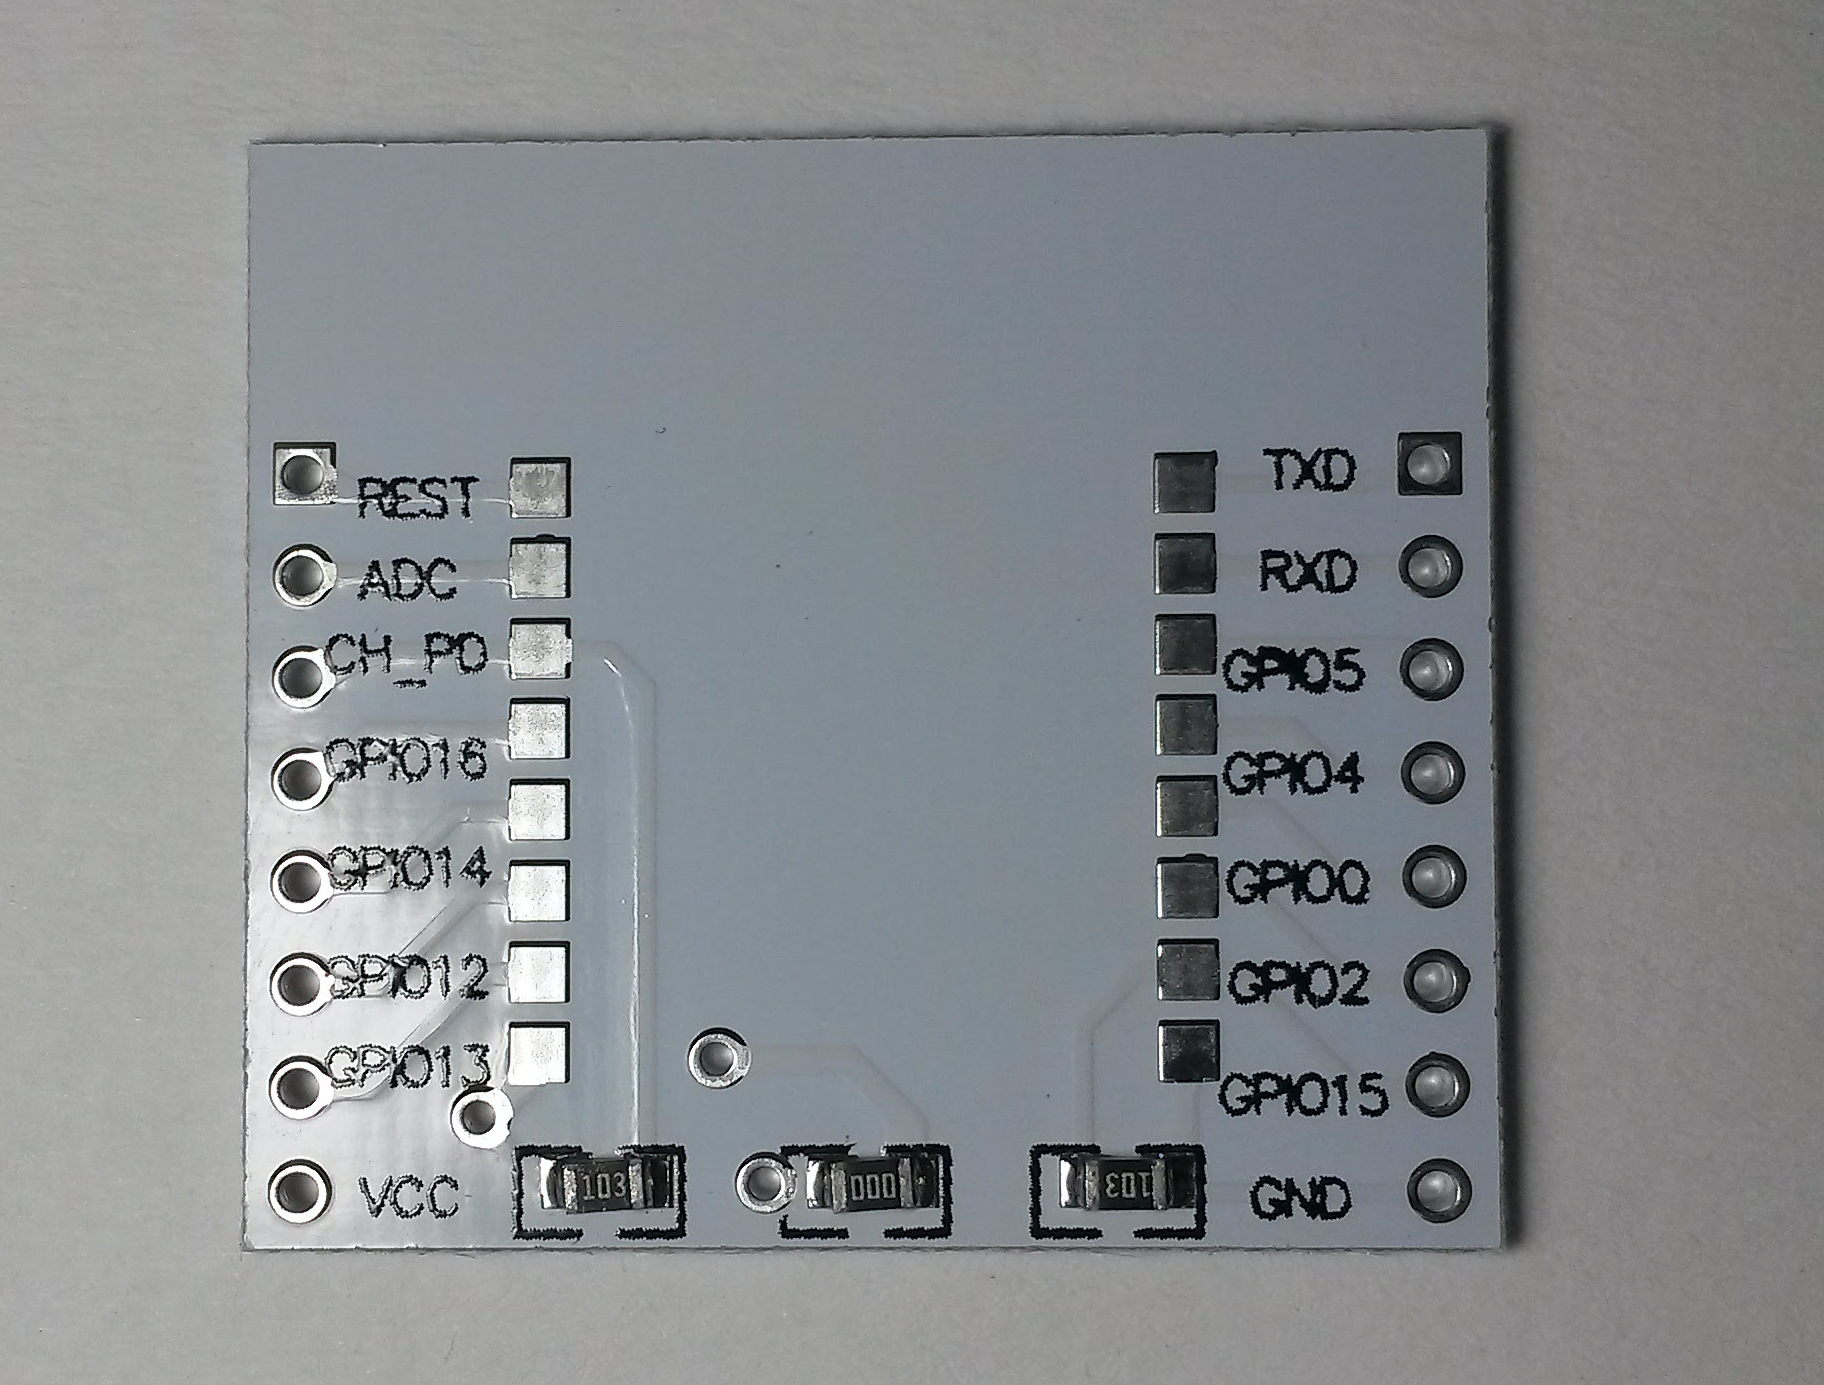 Minimal ESP-12 breakout - top side. You can see a 10k pull-up on CH_PD (enable) pin, 10k pull-down on GPIO15 and a 0R connection bridging the voltage regulator on the other side of the board.